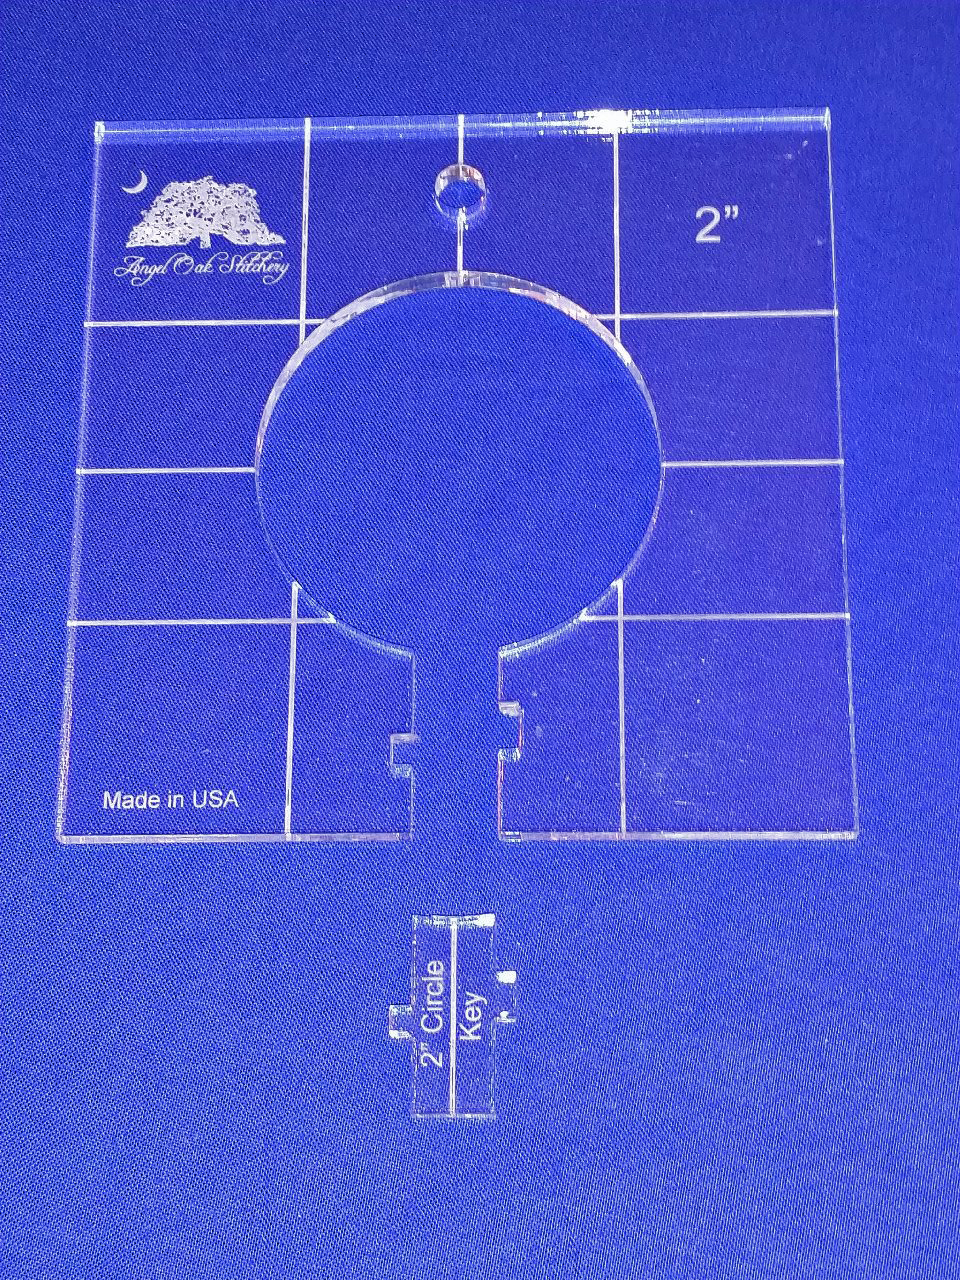 2 inch Circle Low Shank Rulerwork Quilting Template